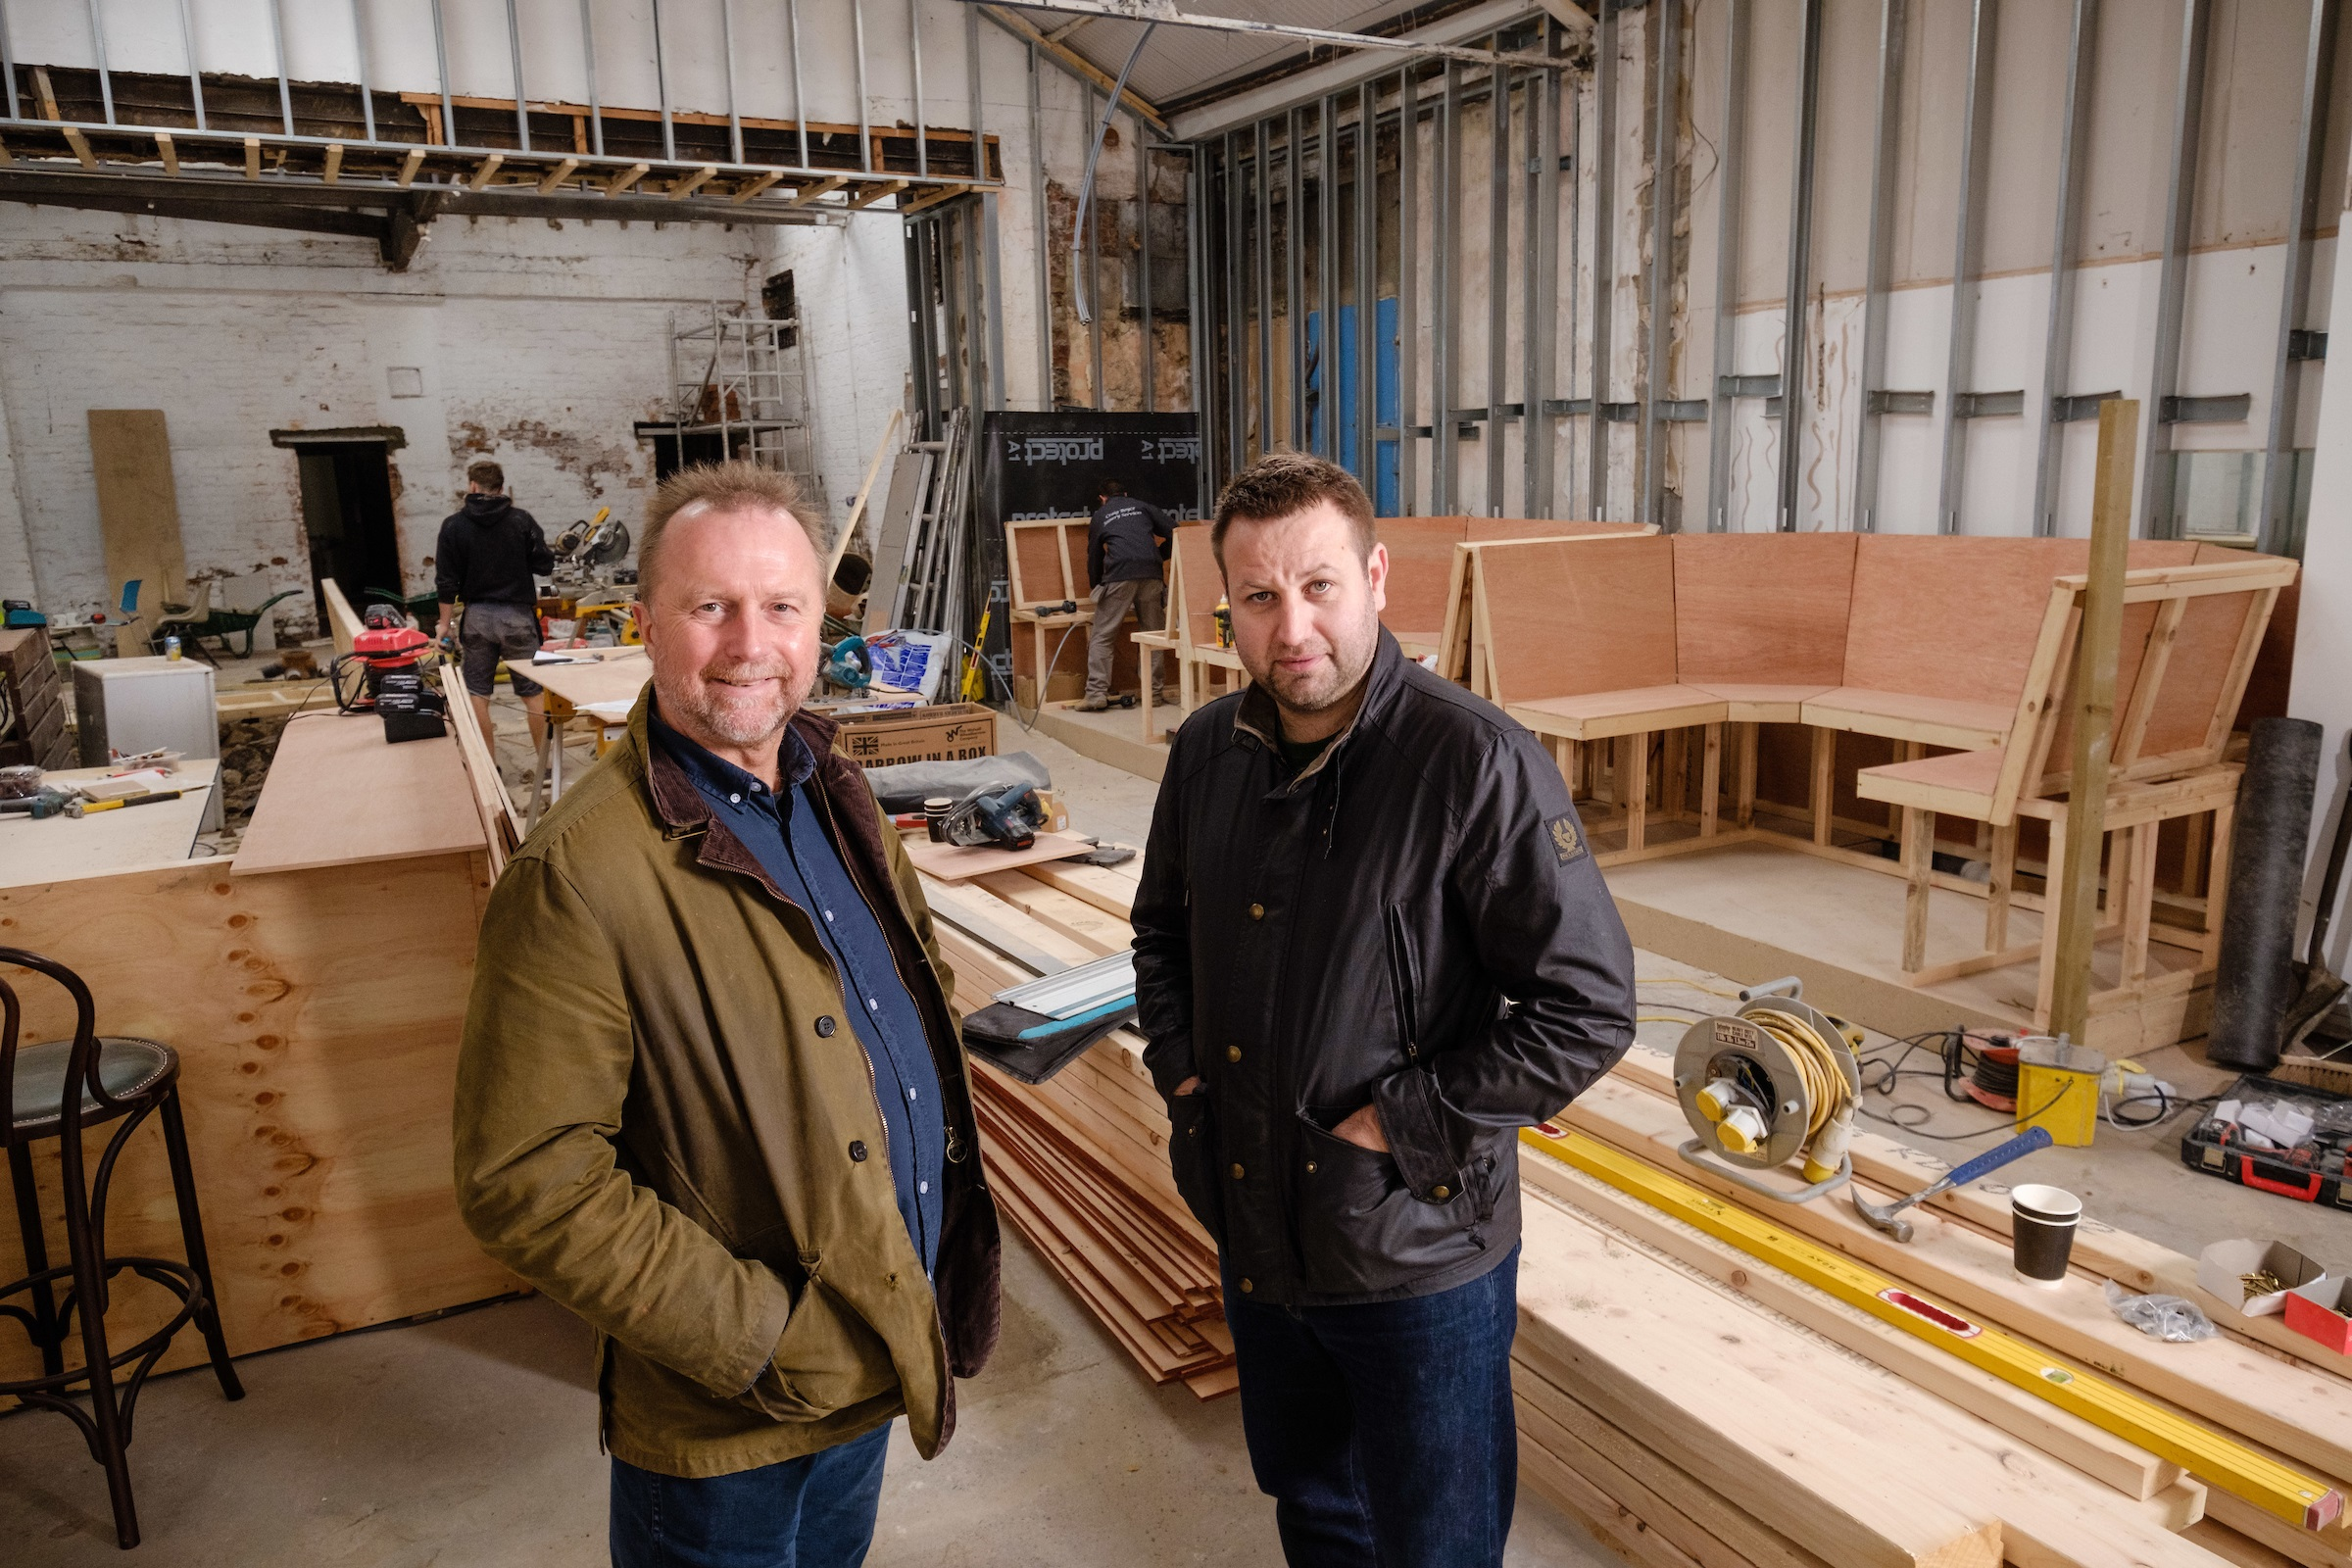 Owners Guy Falkingham (left) and Lee Kirman in the new venue which will combine a working brewery with a high-quality bar.